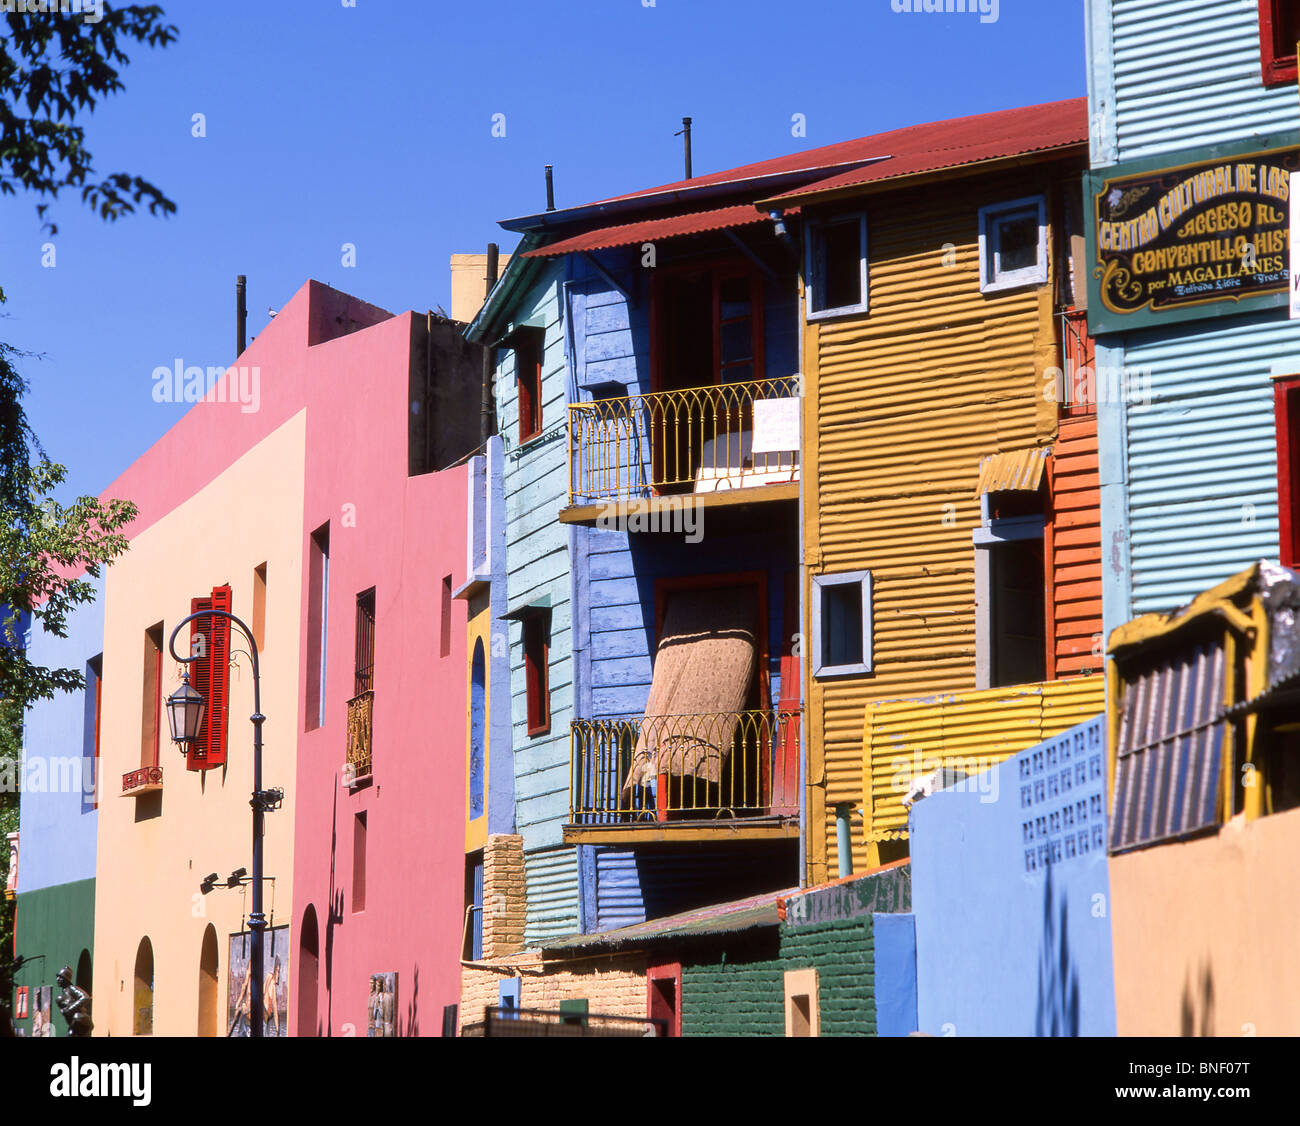 Pastel-coloured buildings, Caminito Street, La Boca, Buenos Aires, Argentina Stock Photo